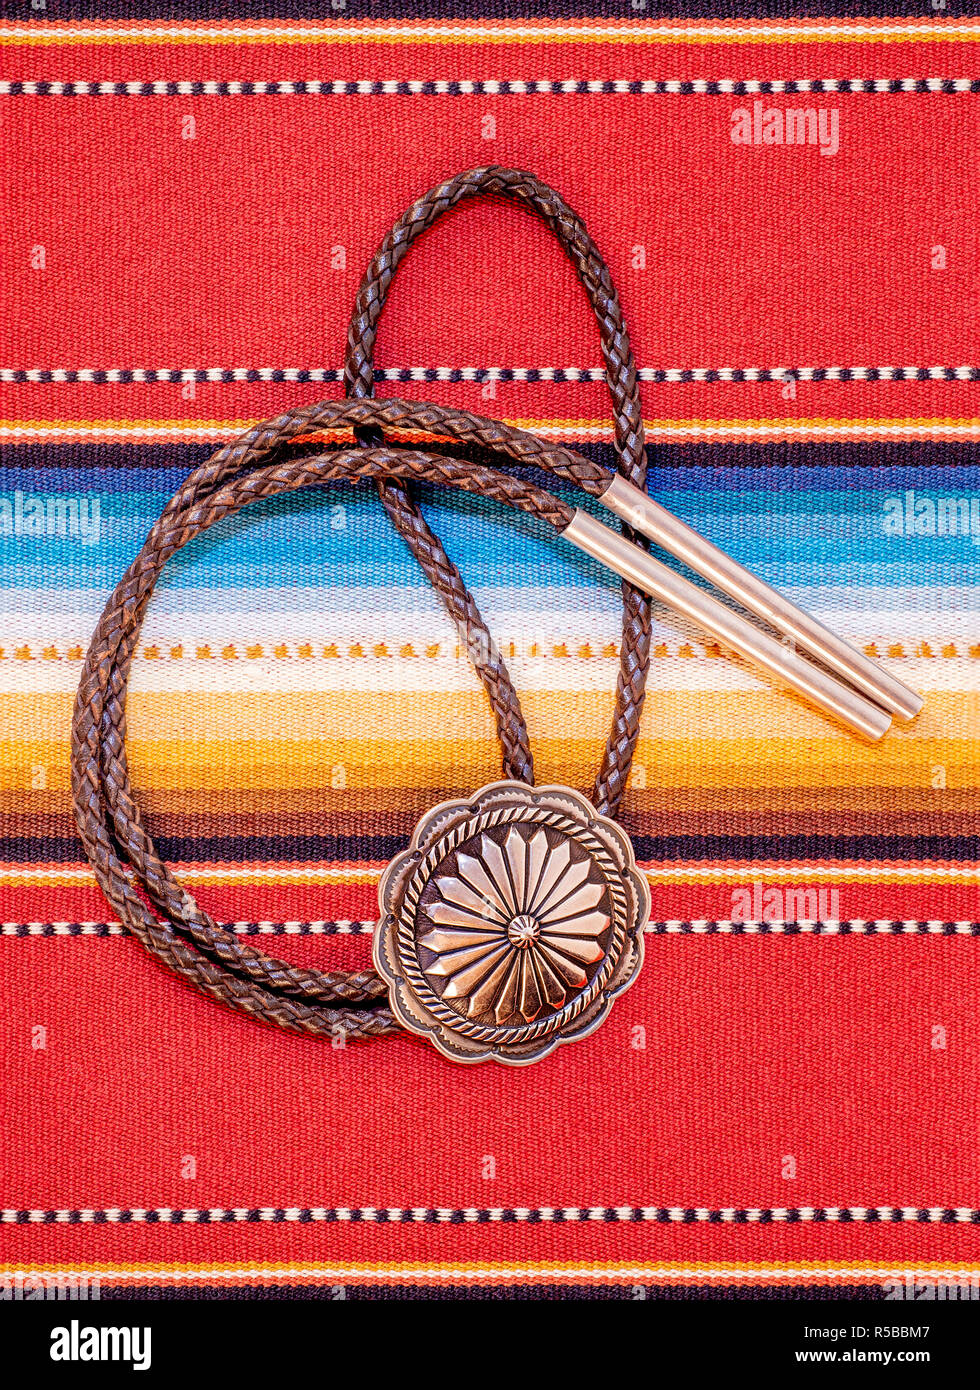 Vintage Sterling Silver Bolo Tie with Concho and Silver Tips on colorful southwestern hand woven fabric. - Stock Image